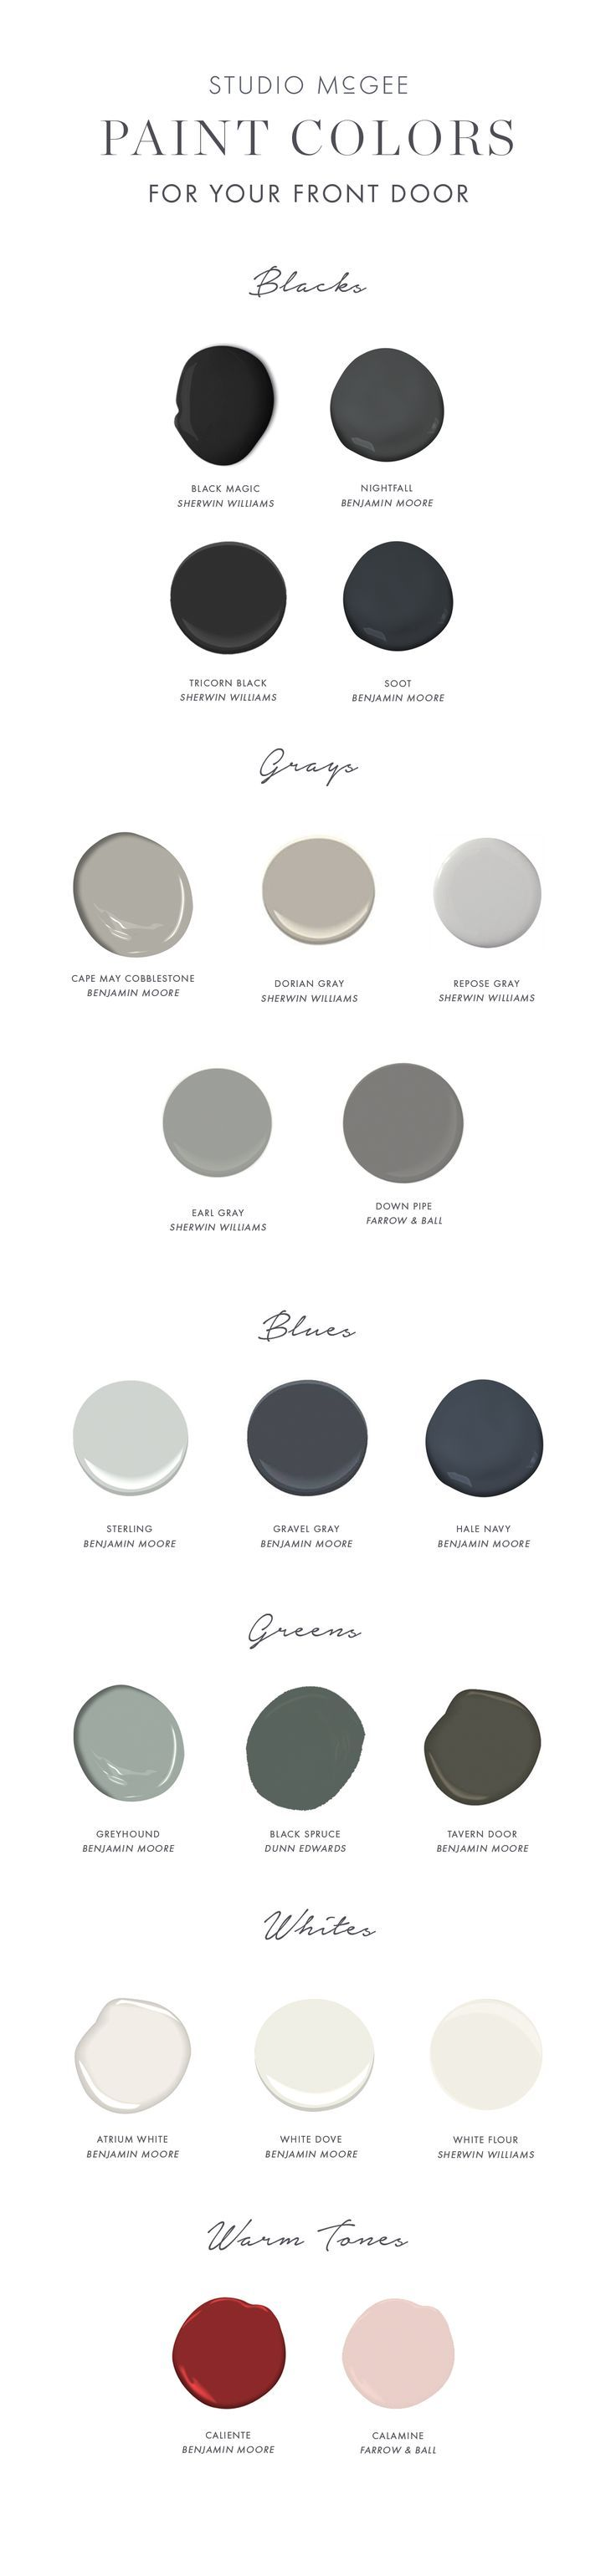 Front door paint guide - Studio McGee Blog